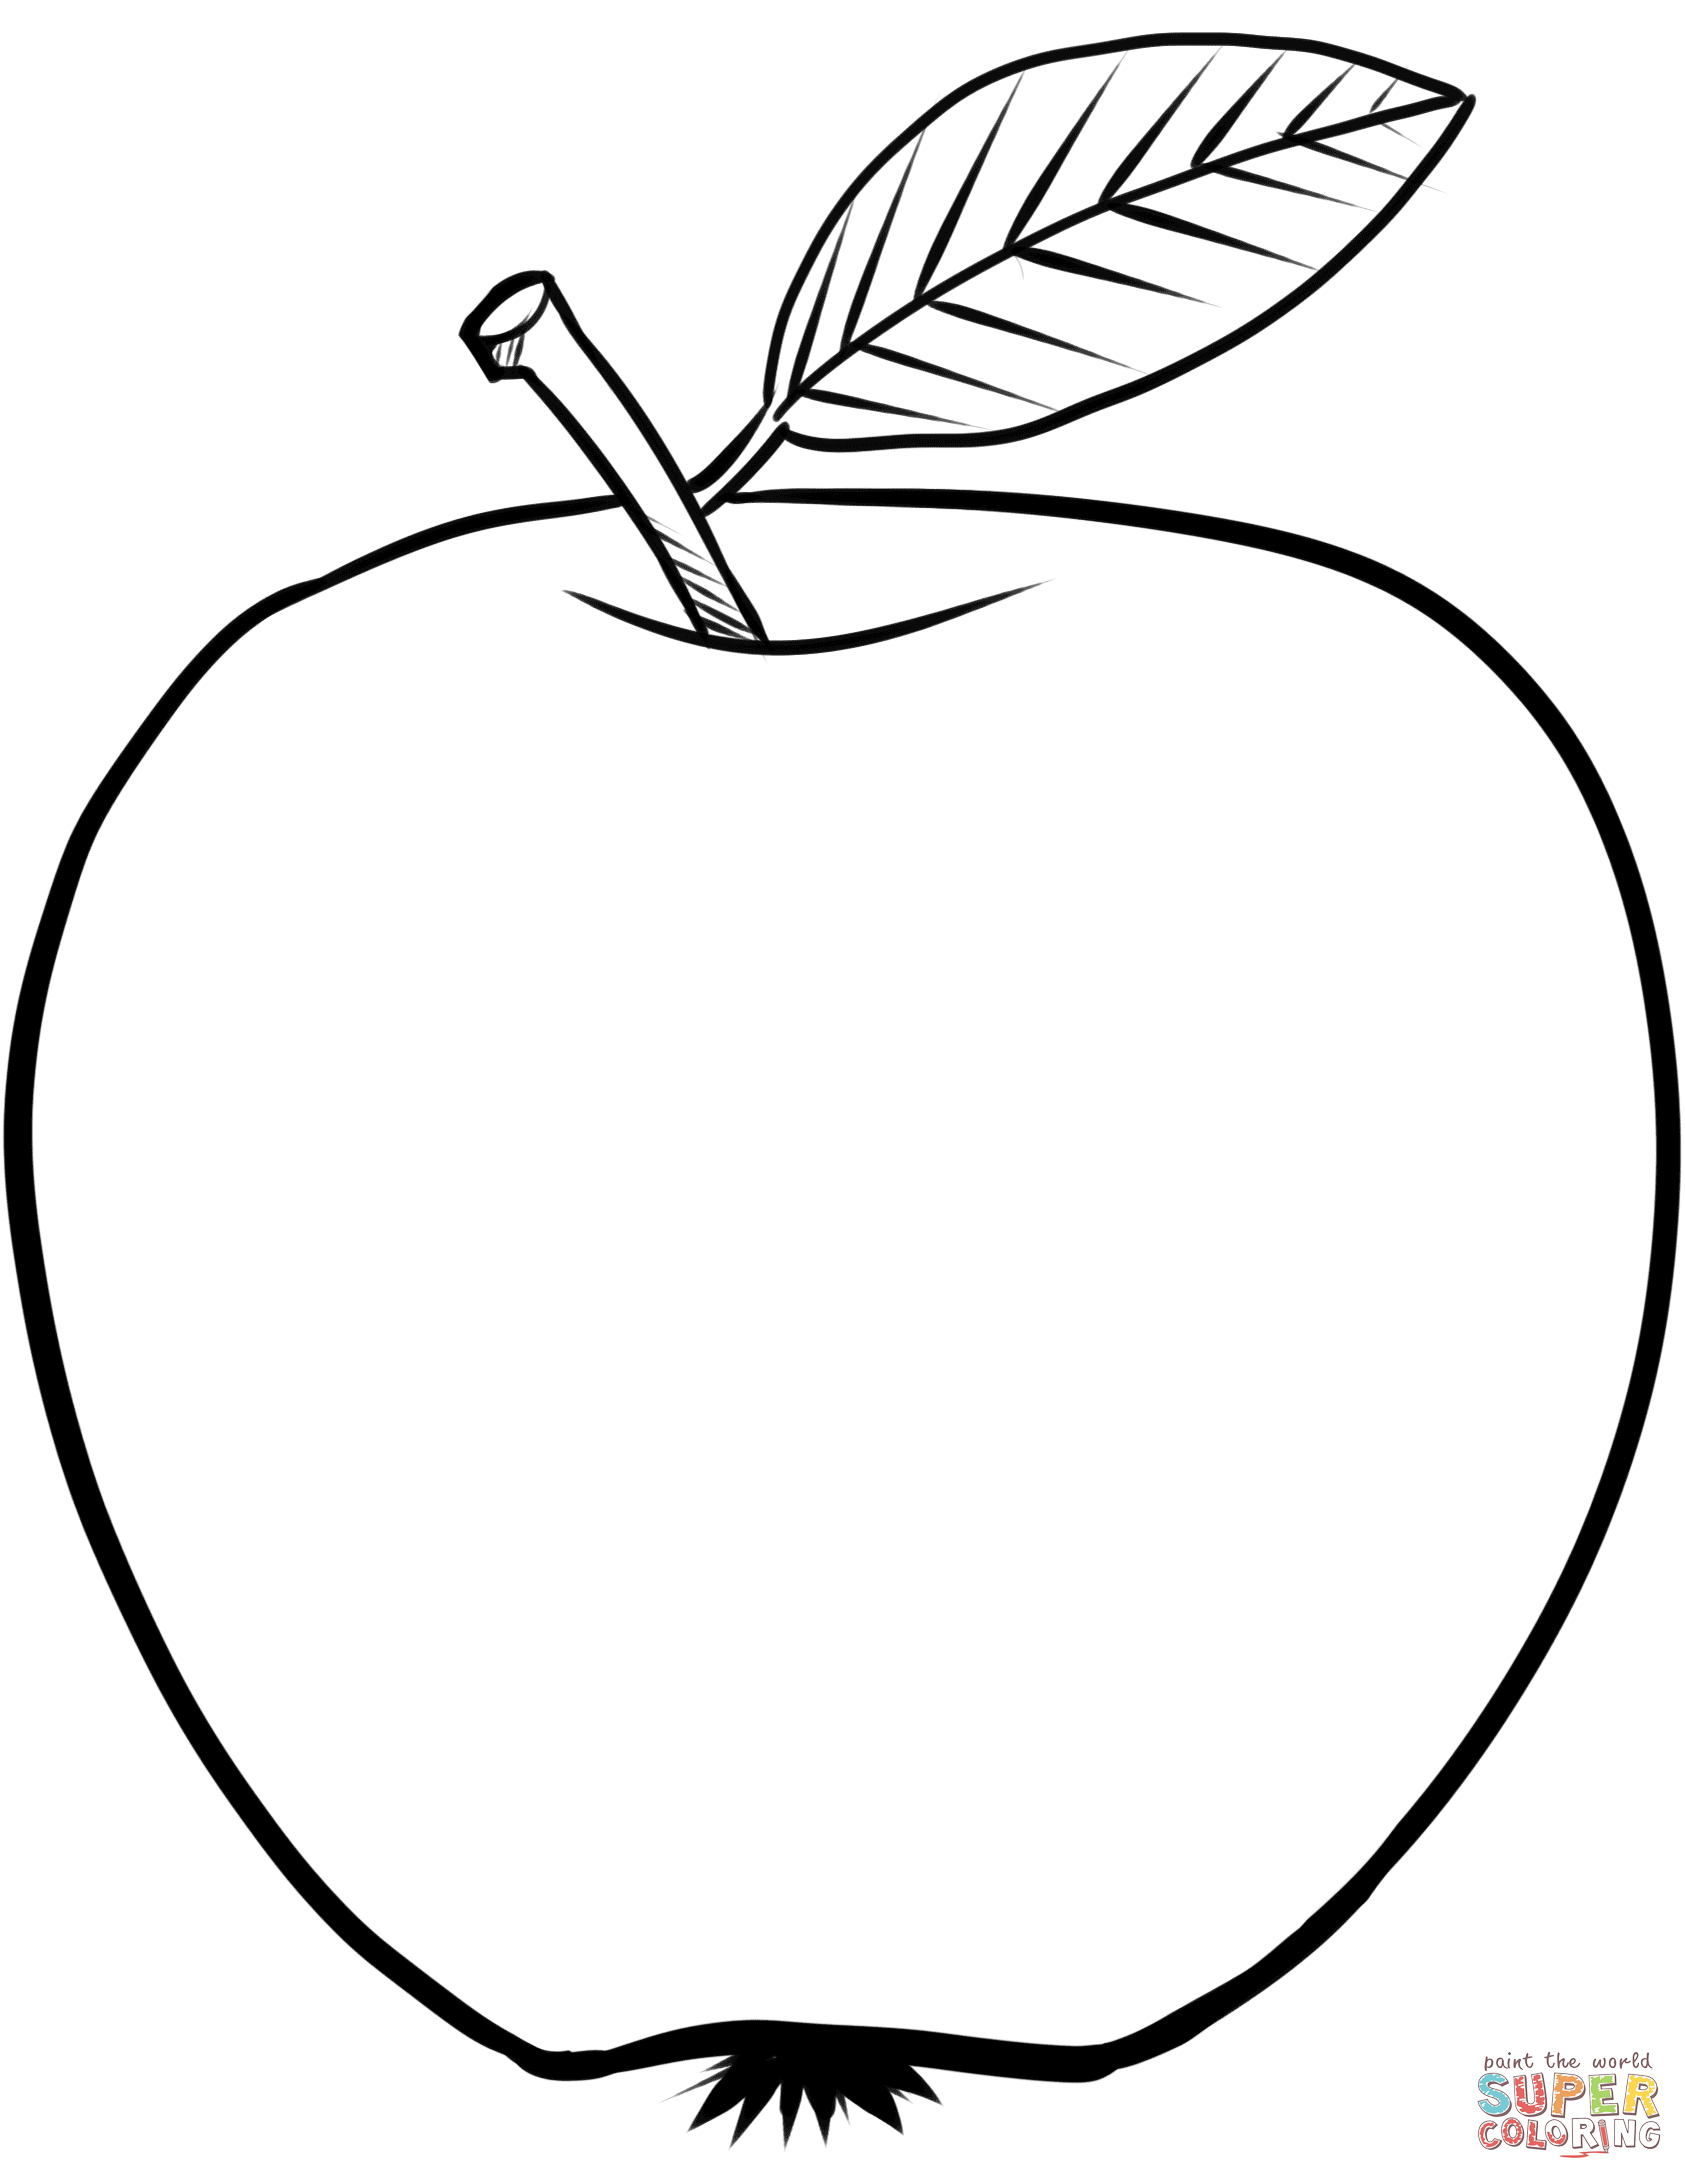 1685x2180 Apple Clipart Colouring Page